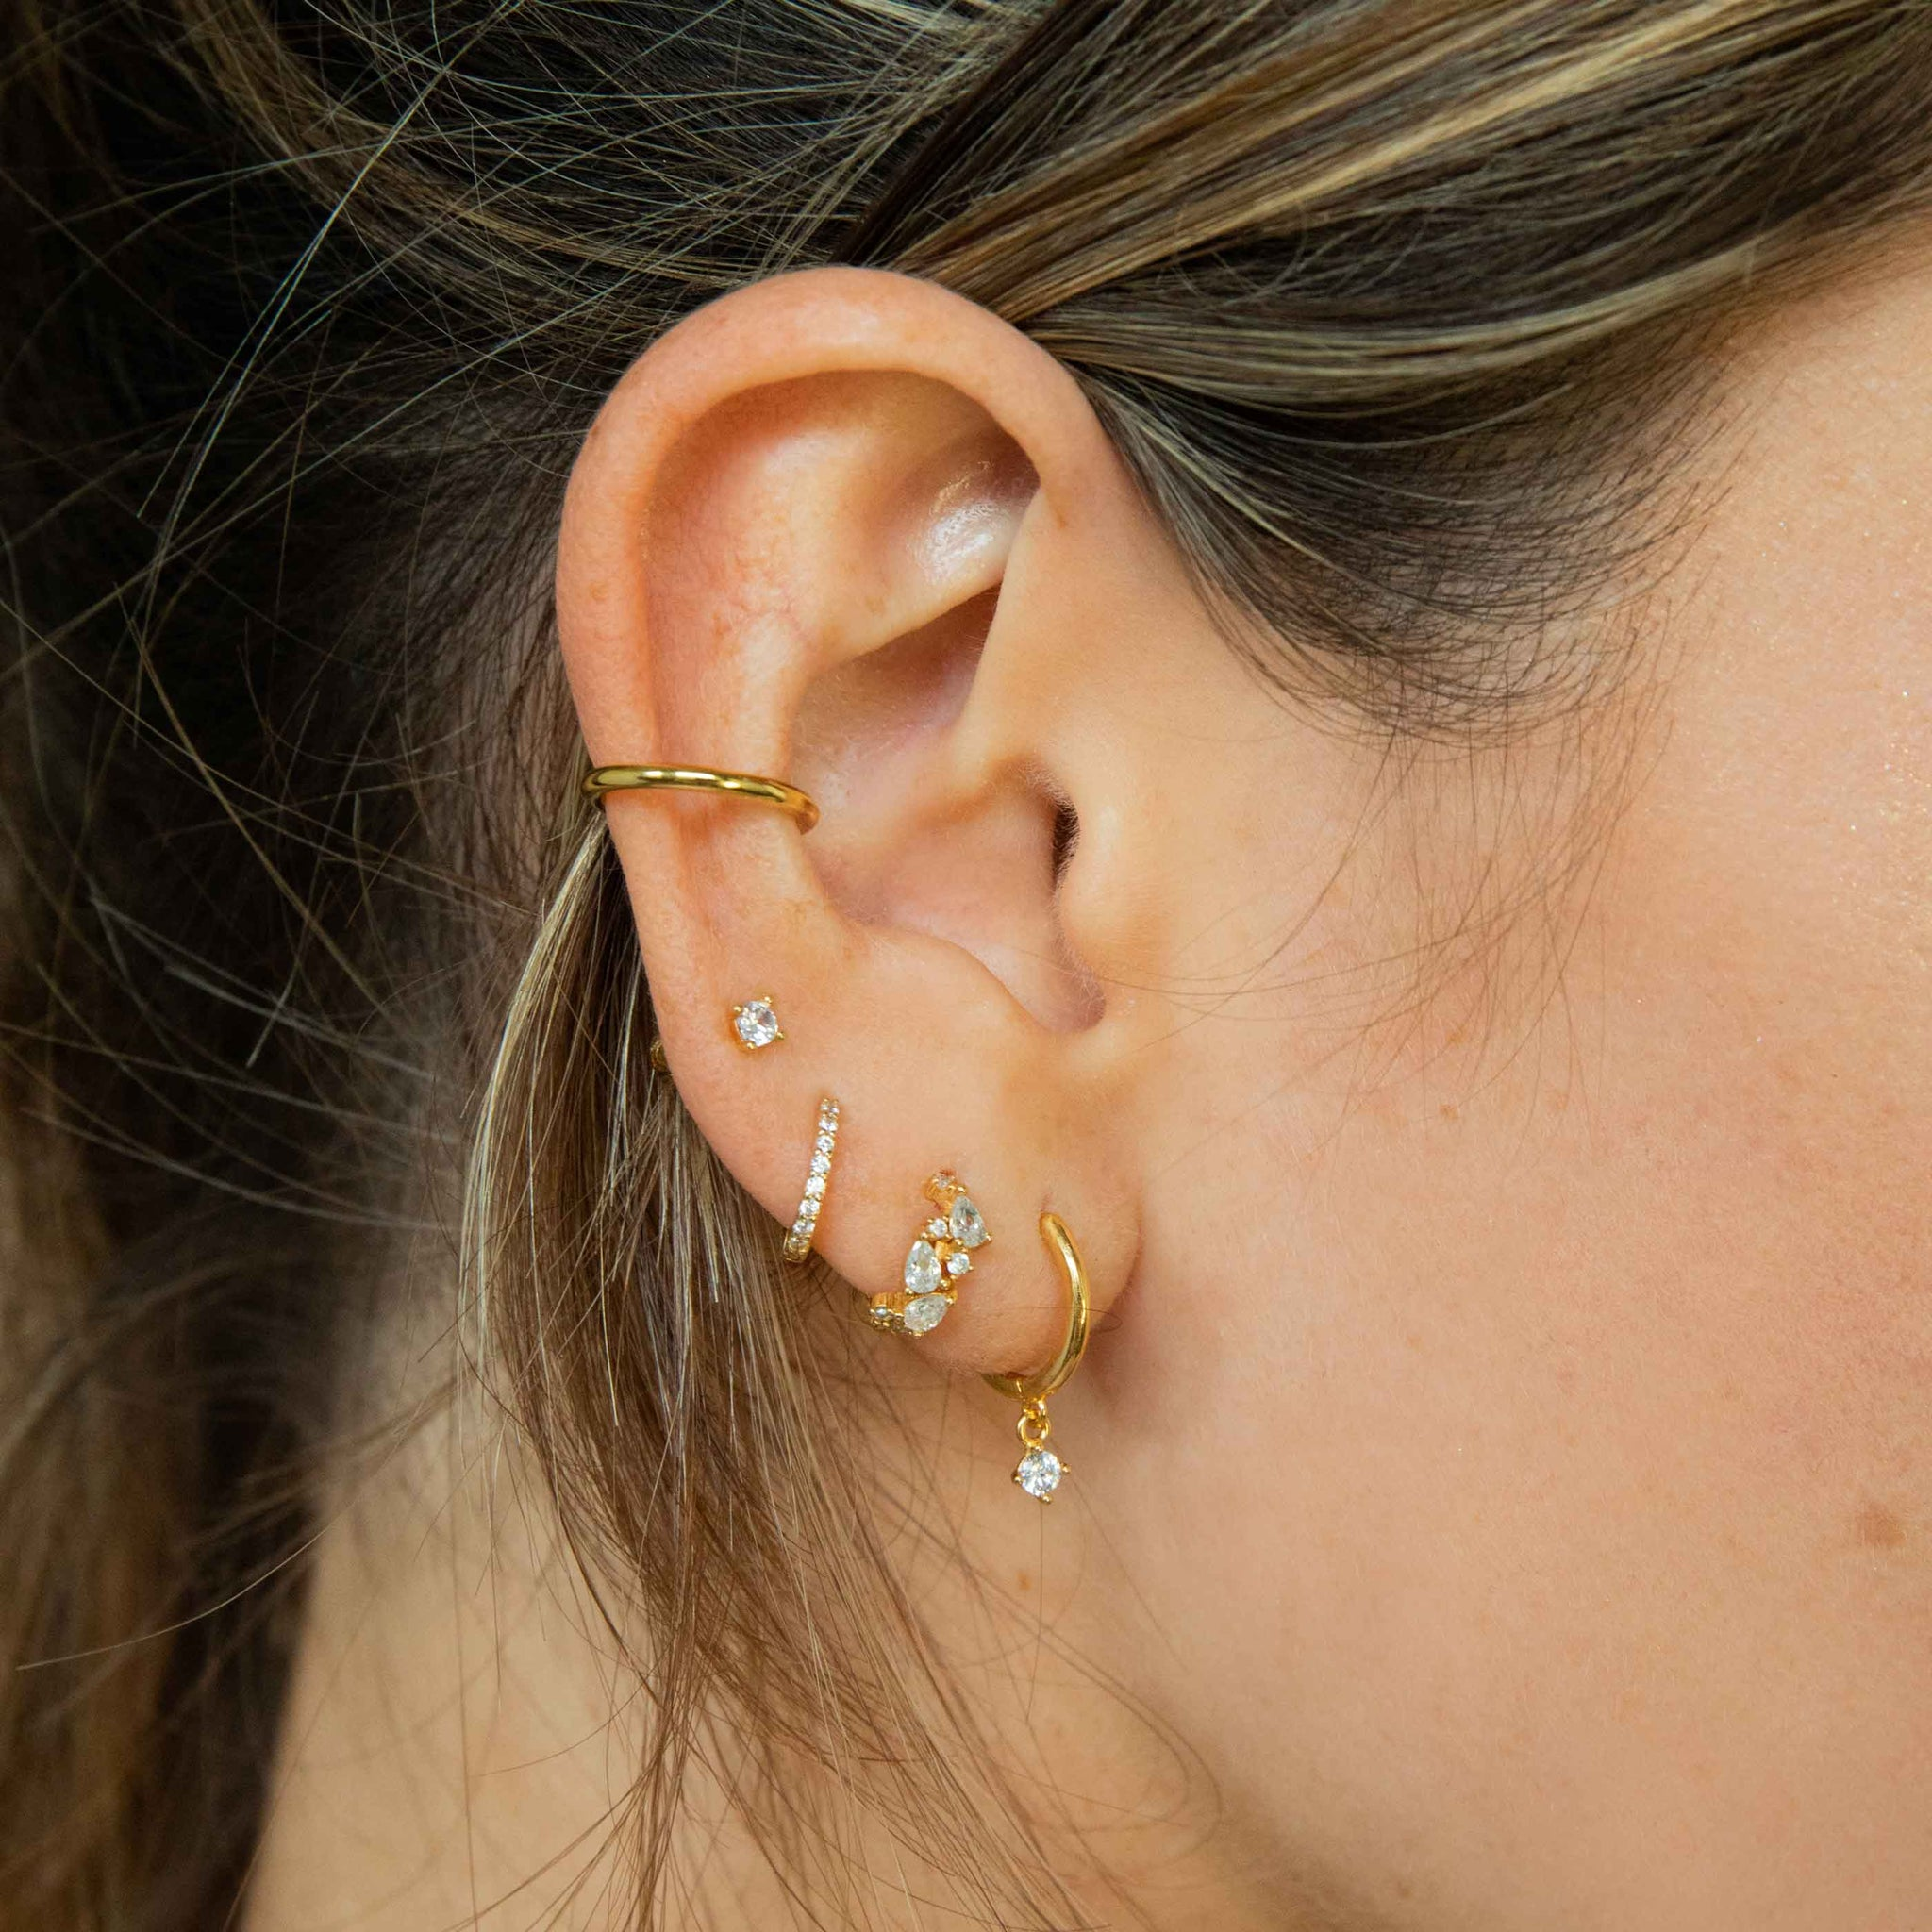 Mystic Simple Stud Earrings in Gold worn in fourth lobe piercing